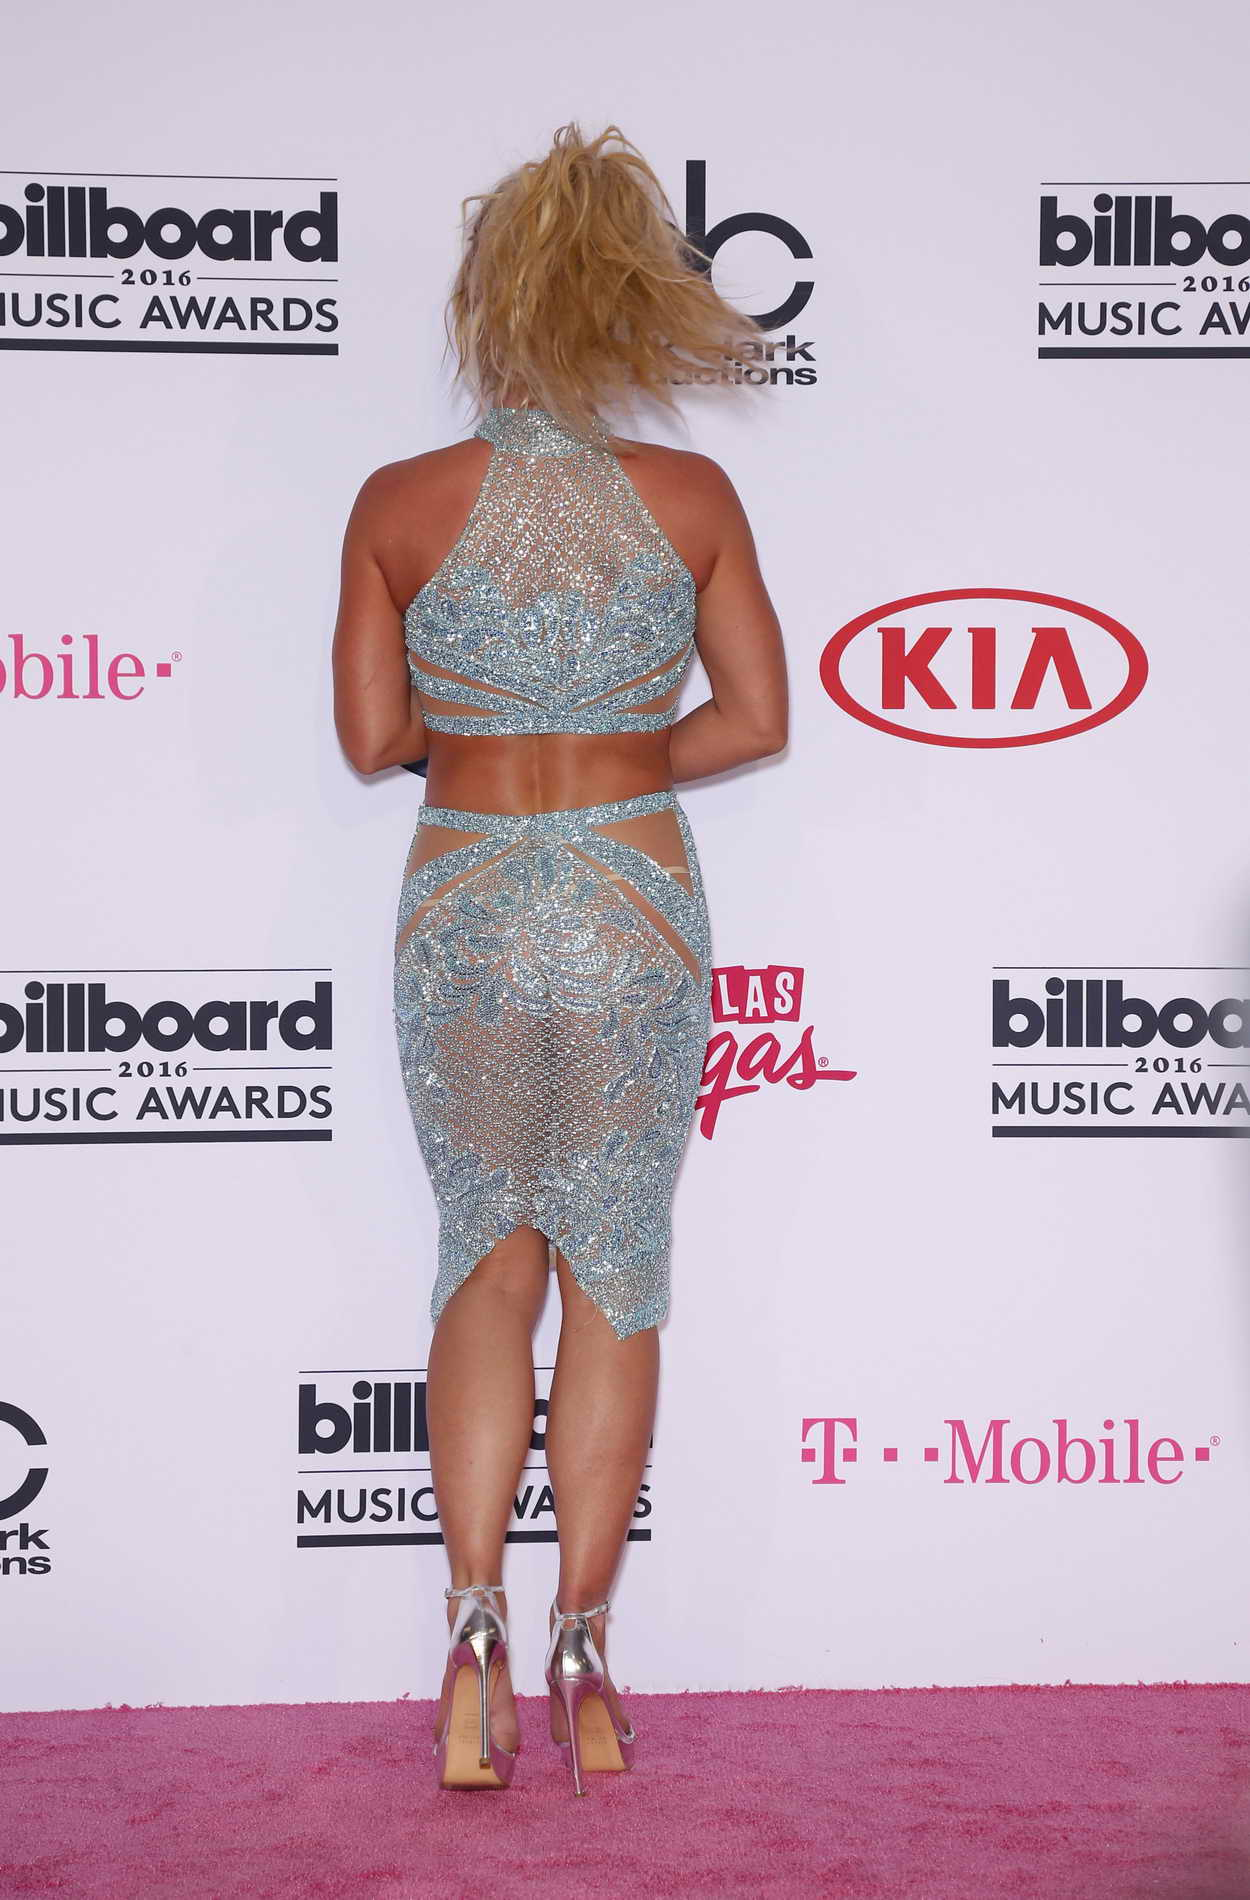 how to get tickets to billboard music awards